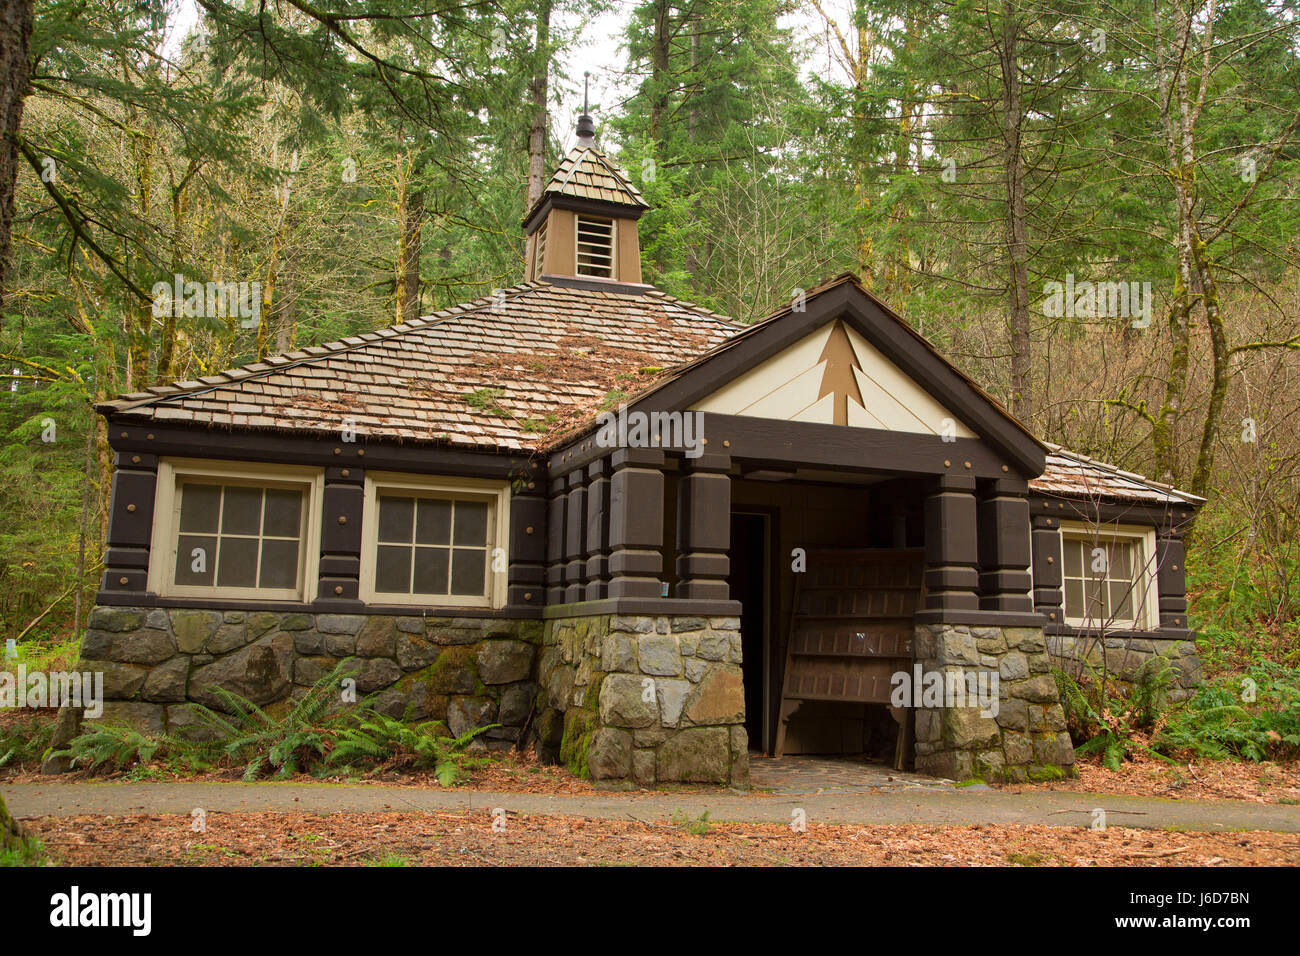 Restrooms at Eagle Creek, Mt Hood National Forest, Columbia River Gorge National Scenic Area, Oregon - Stock Image